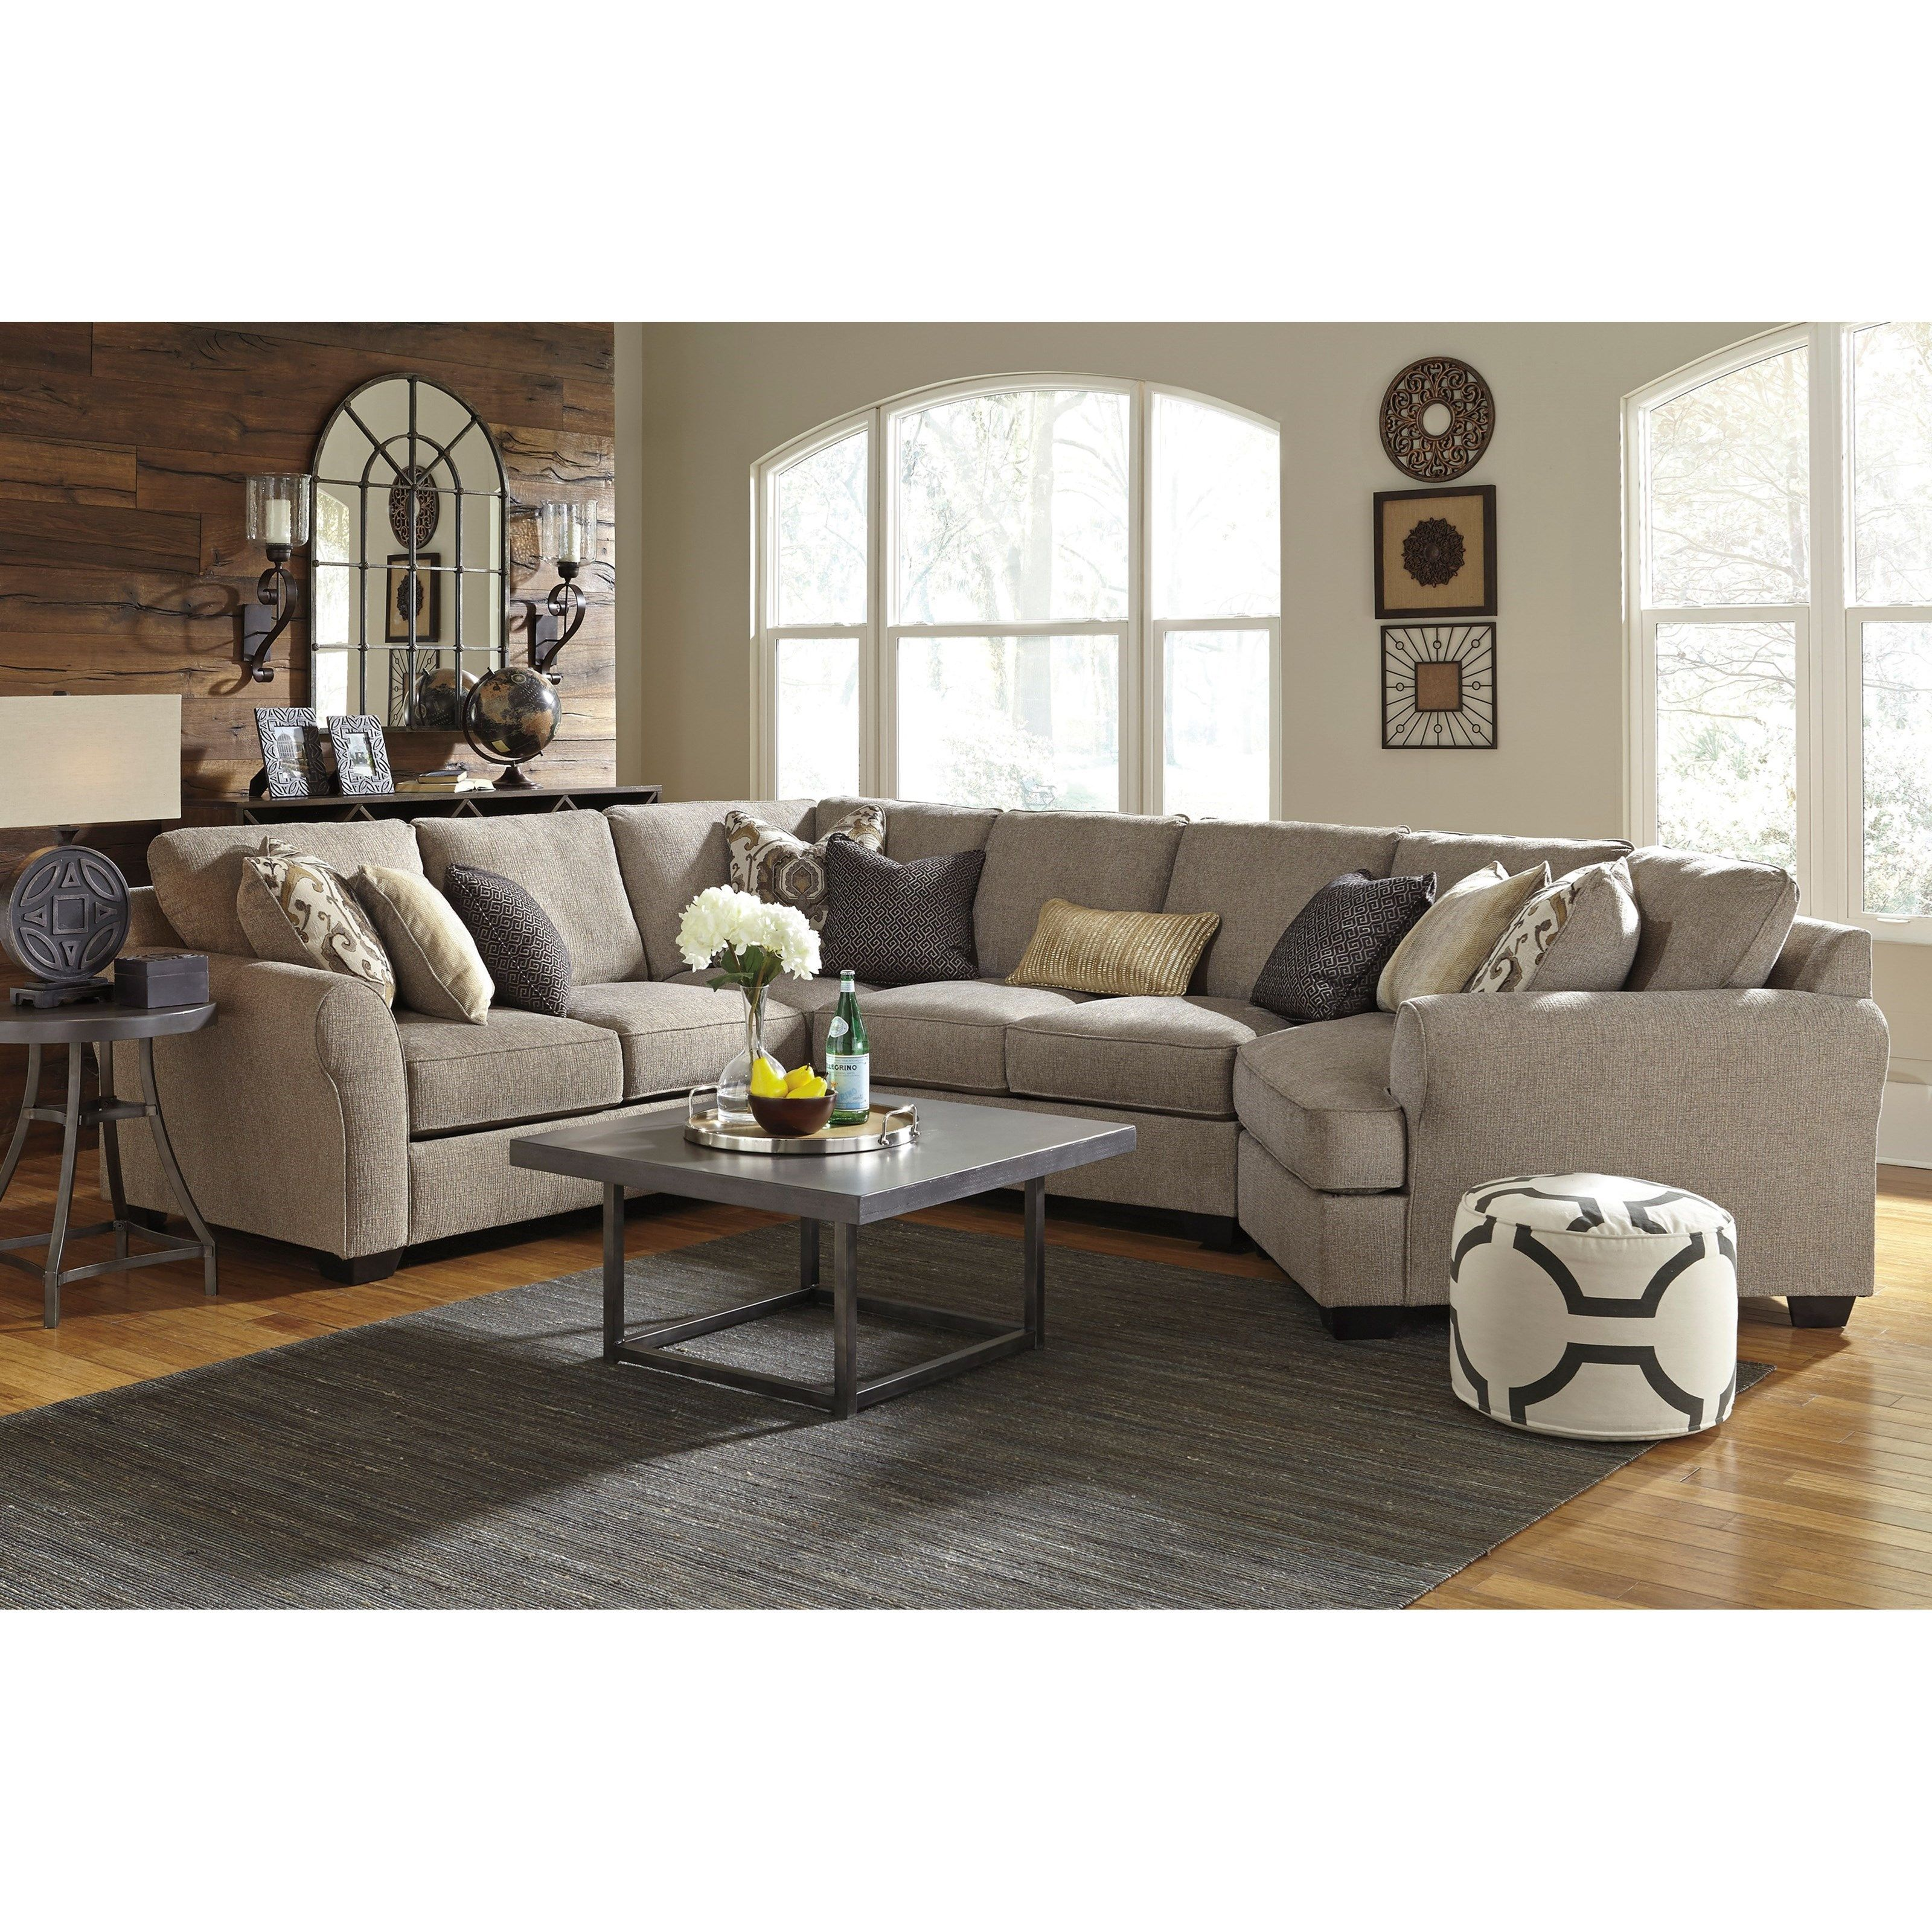 Pantomine 4 Piece Sectional With Right Cuddler By Benchcraft Cheap Living Room Sets Living Room Grey Furniture Layout